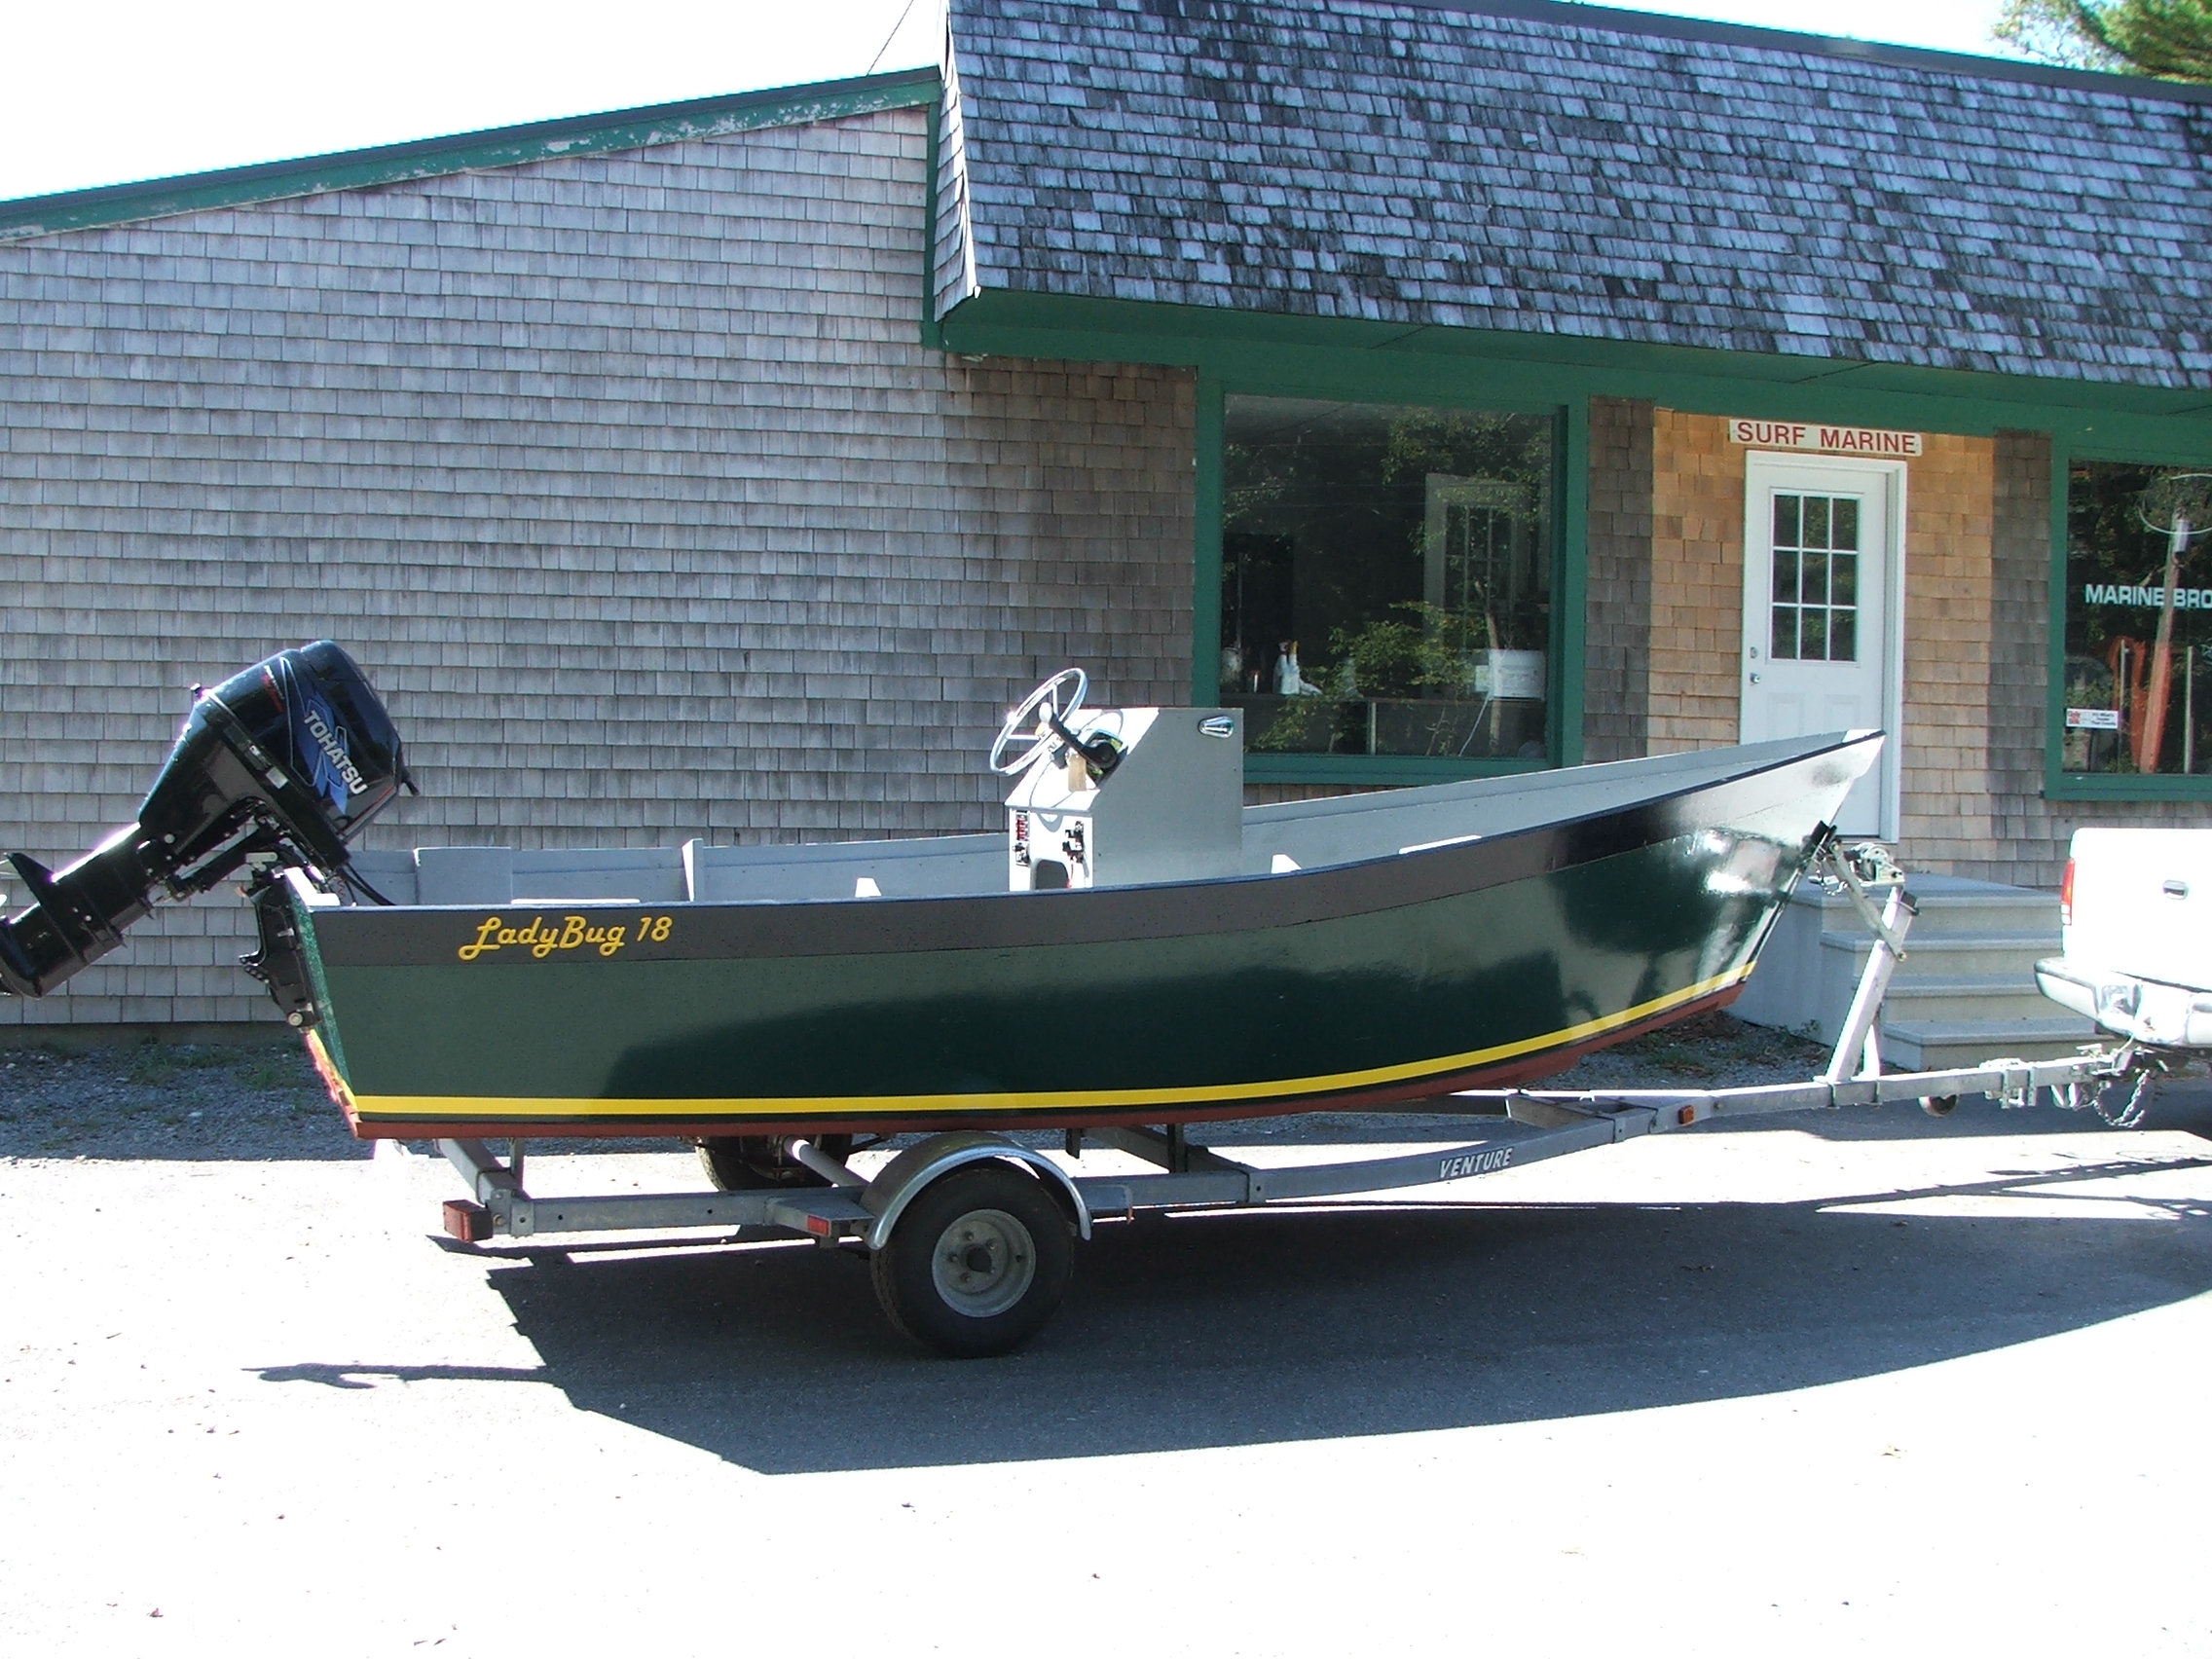 Fifth Additional product image for - Lady Bug Commercial Skiff Plans